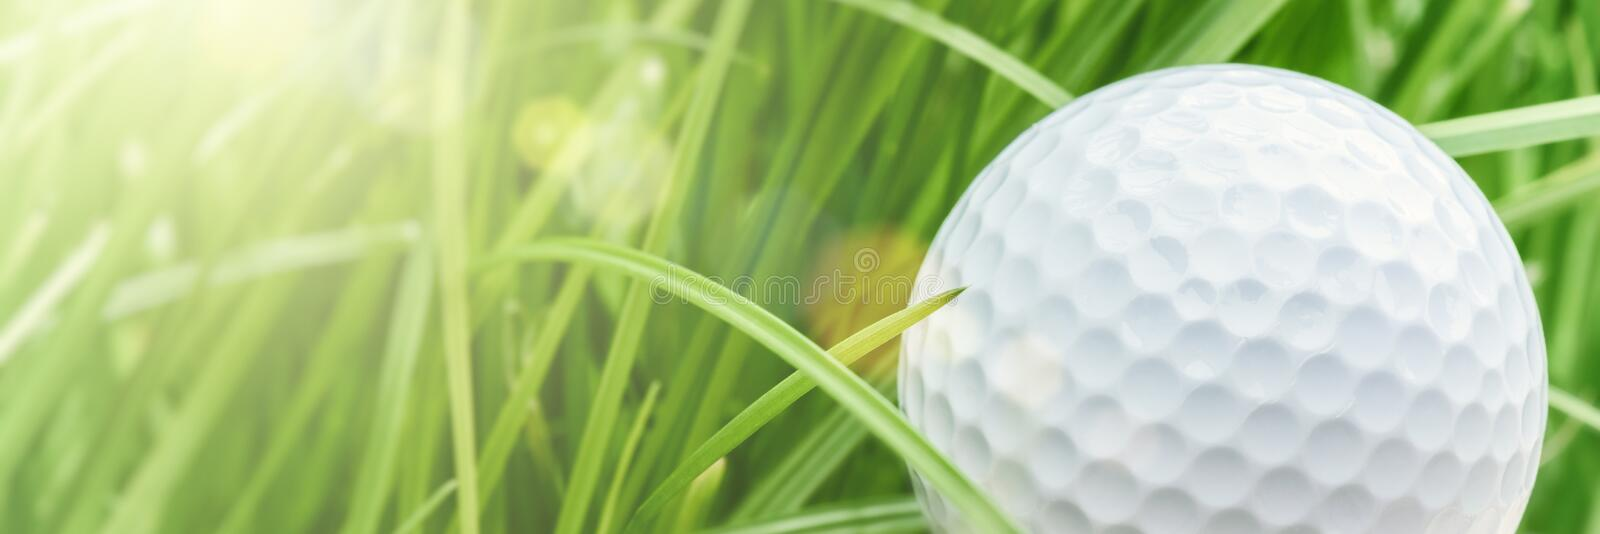 Golf ball over green grass background, closeup. Sport and leisure concept royalty free stock images